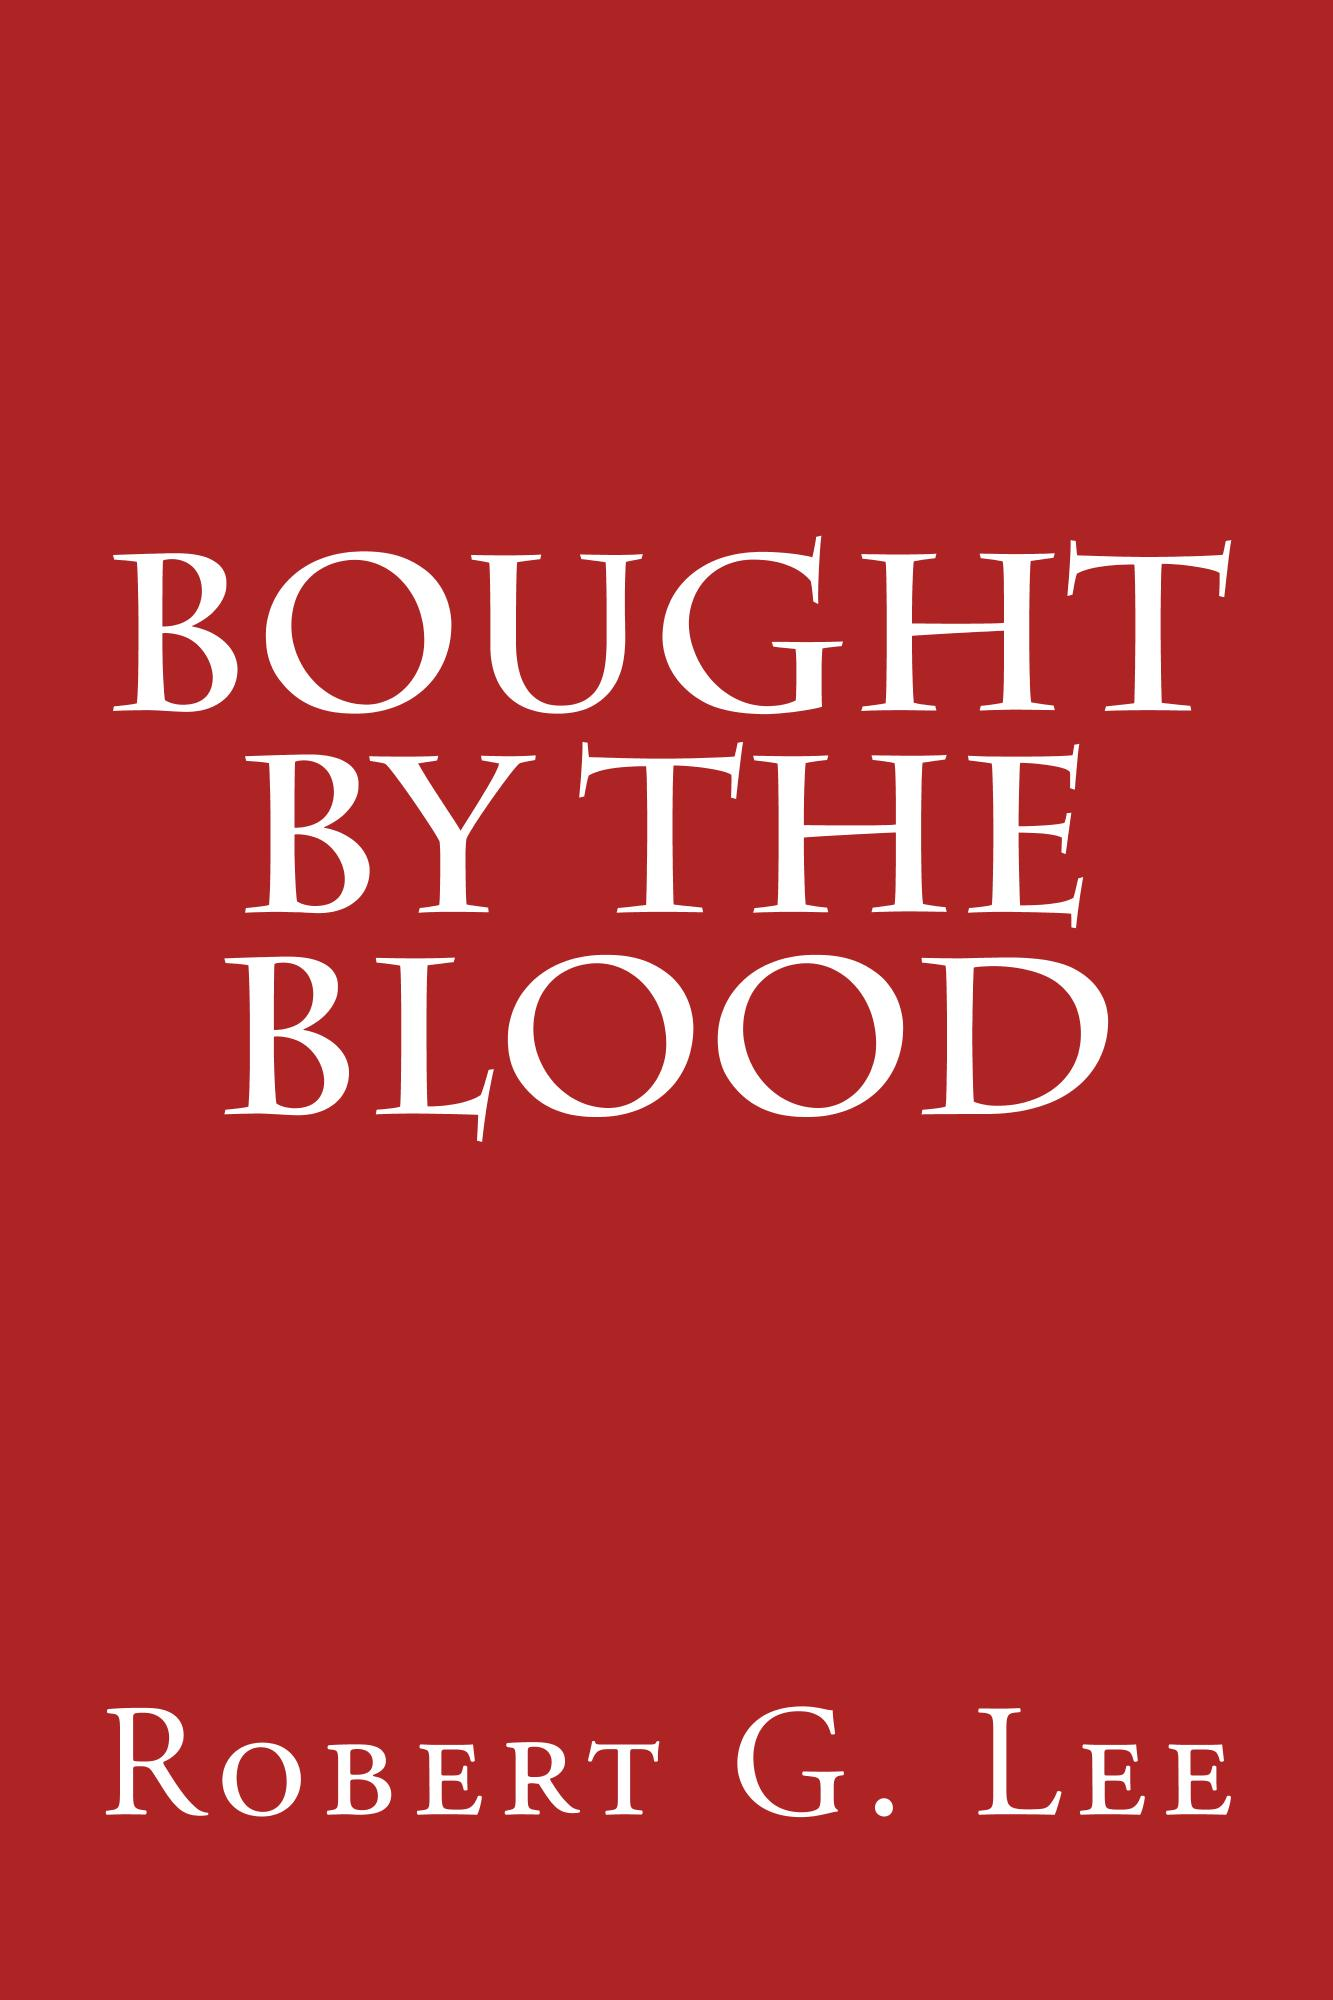 Bought_by_the_Blood_Cover_for_Kindle